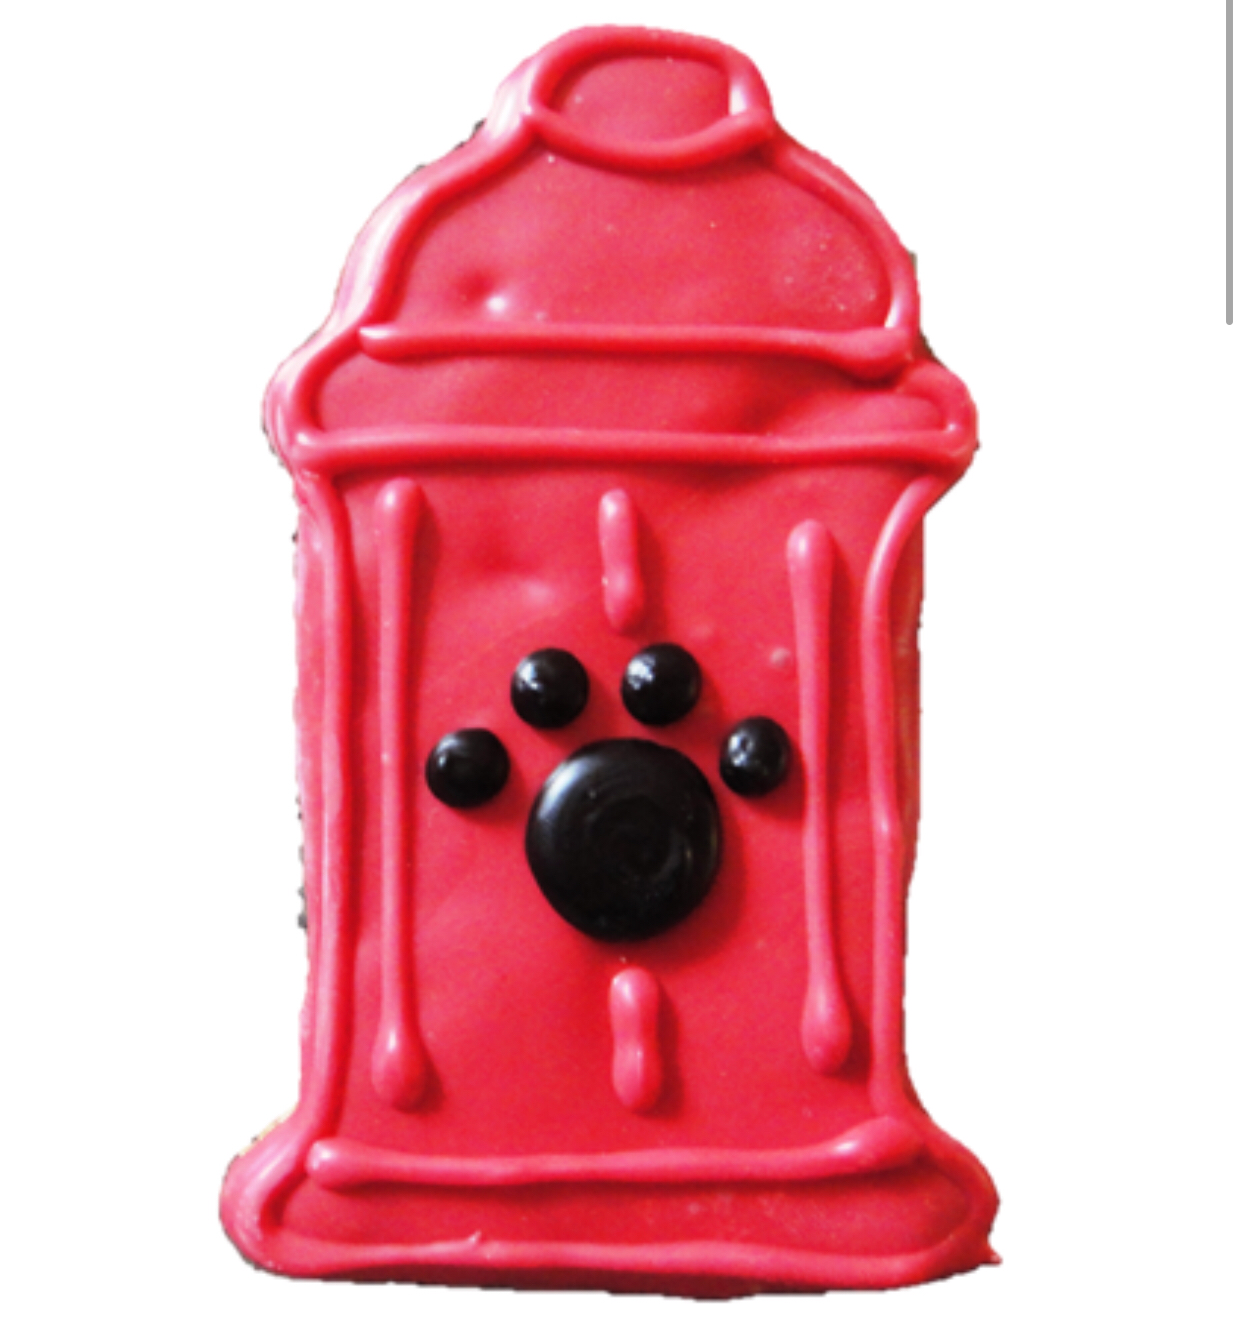 Fire Hydrant Cookie